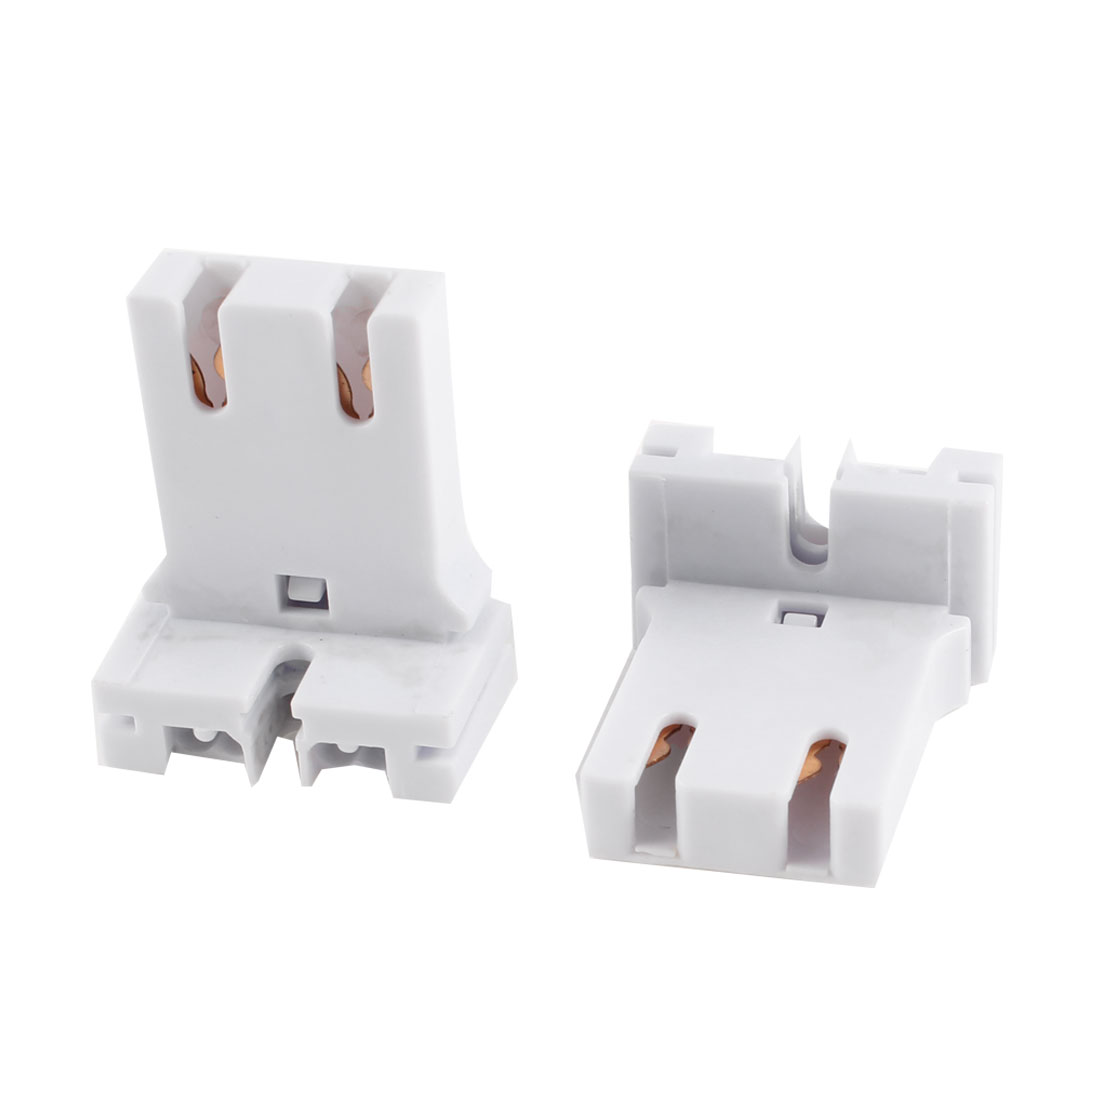 Pair U-Shaped T8 T12 Fluorescent Lamp Holder Light Socket